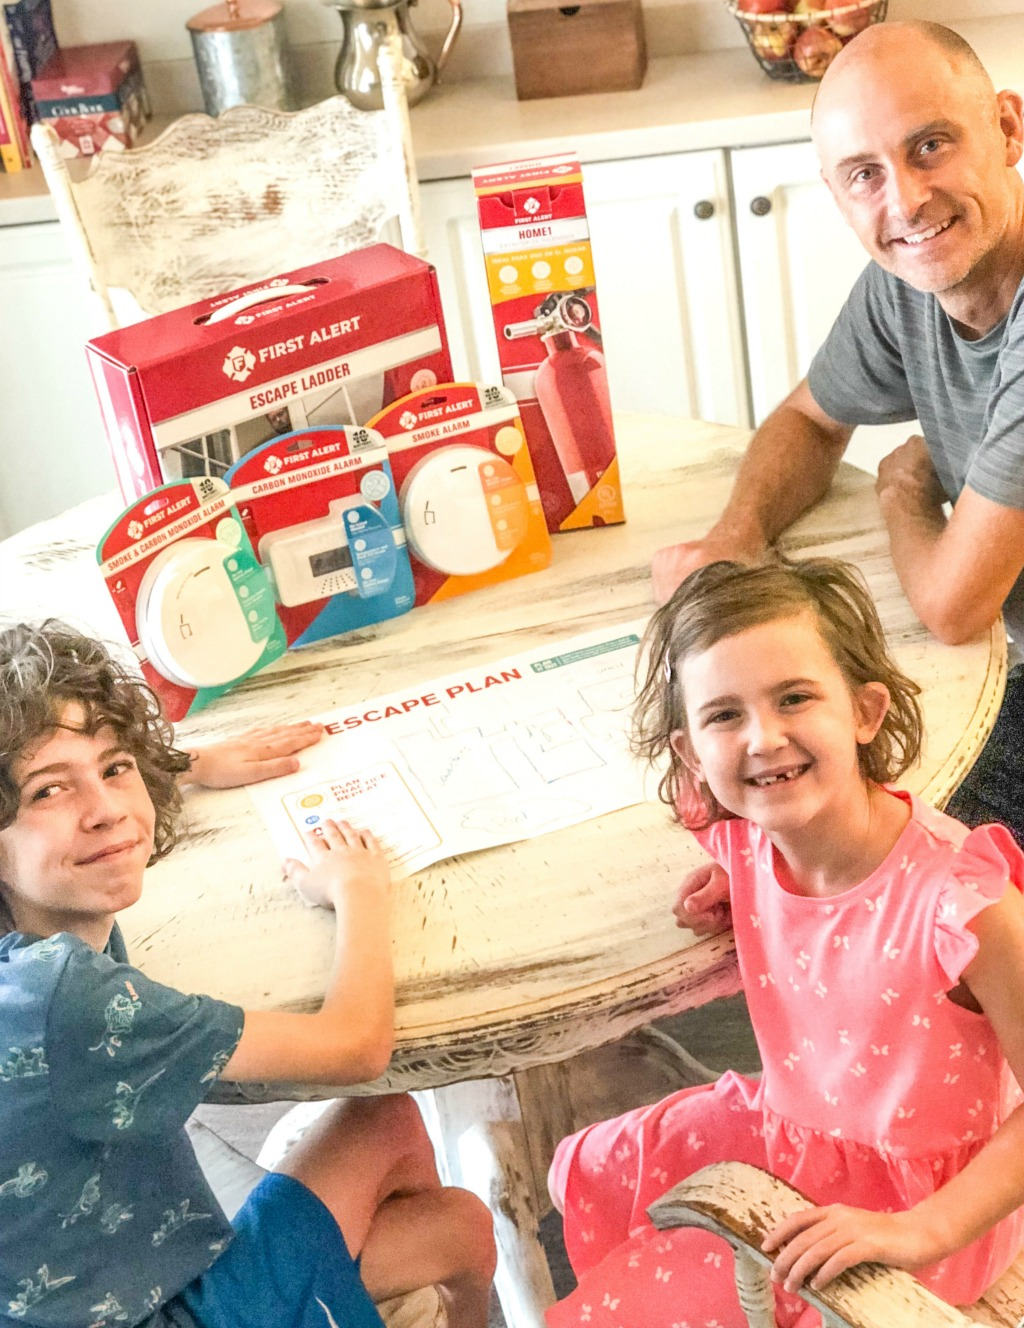 family going over emergency escape plan at table